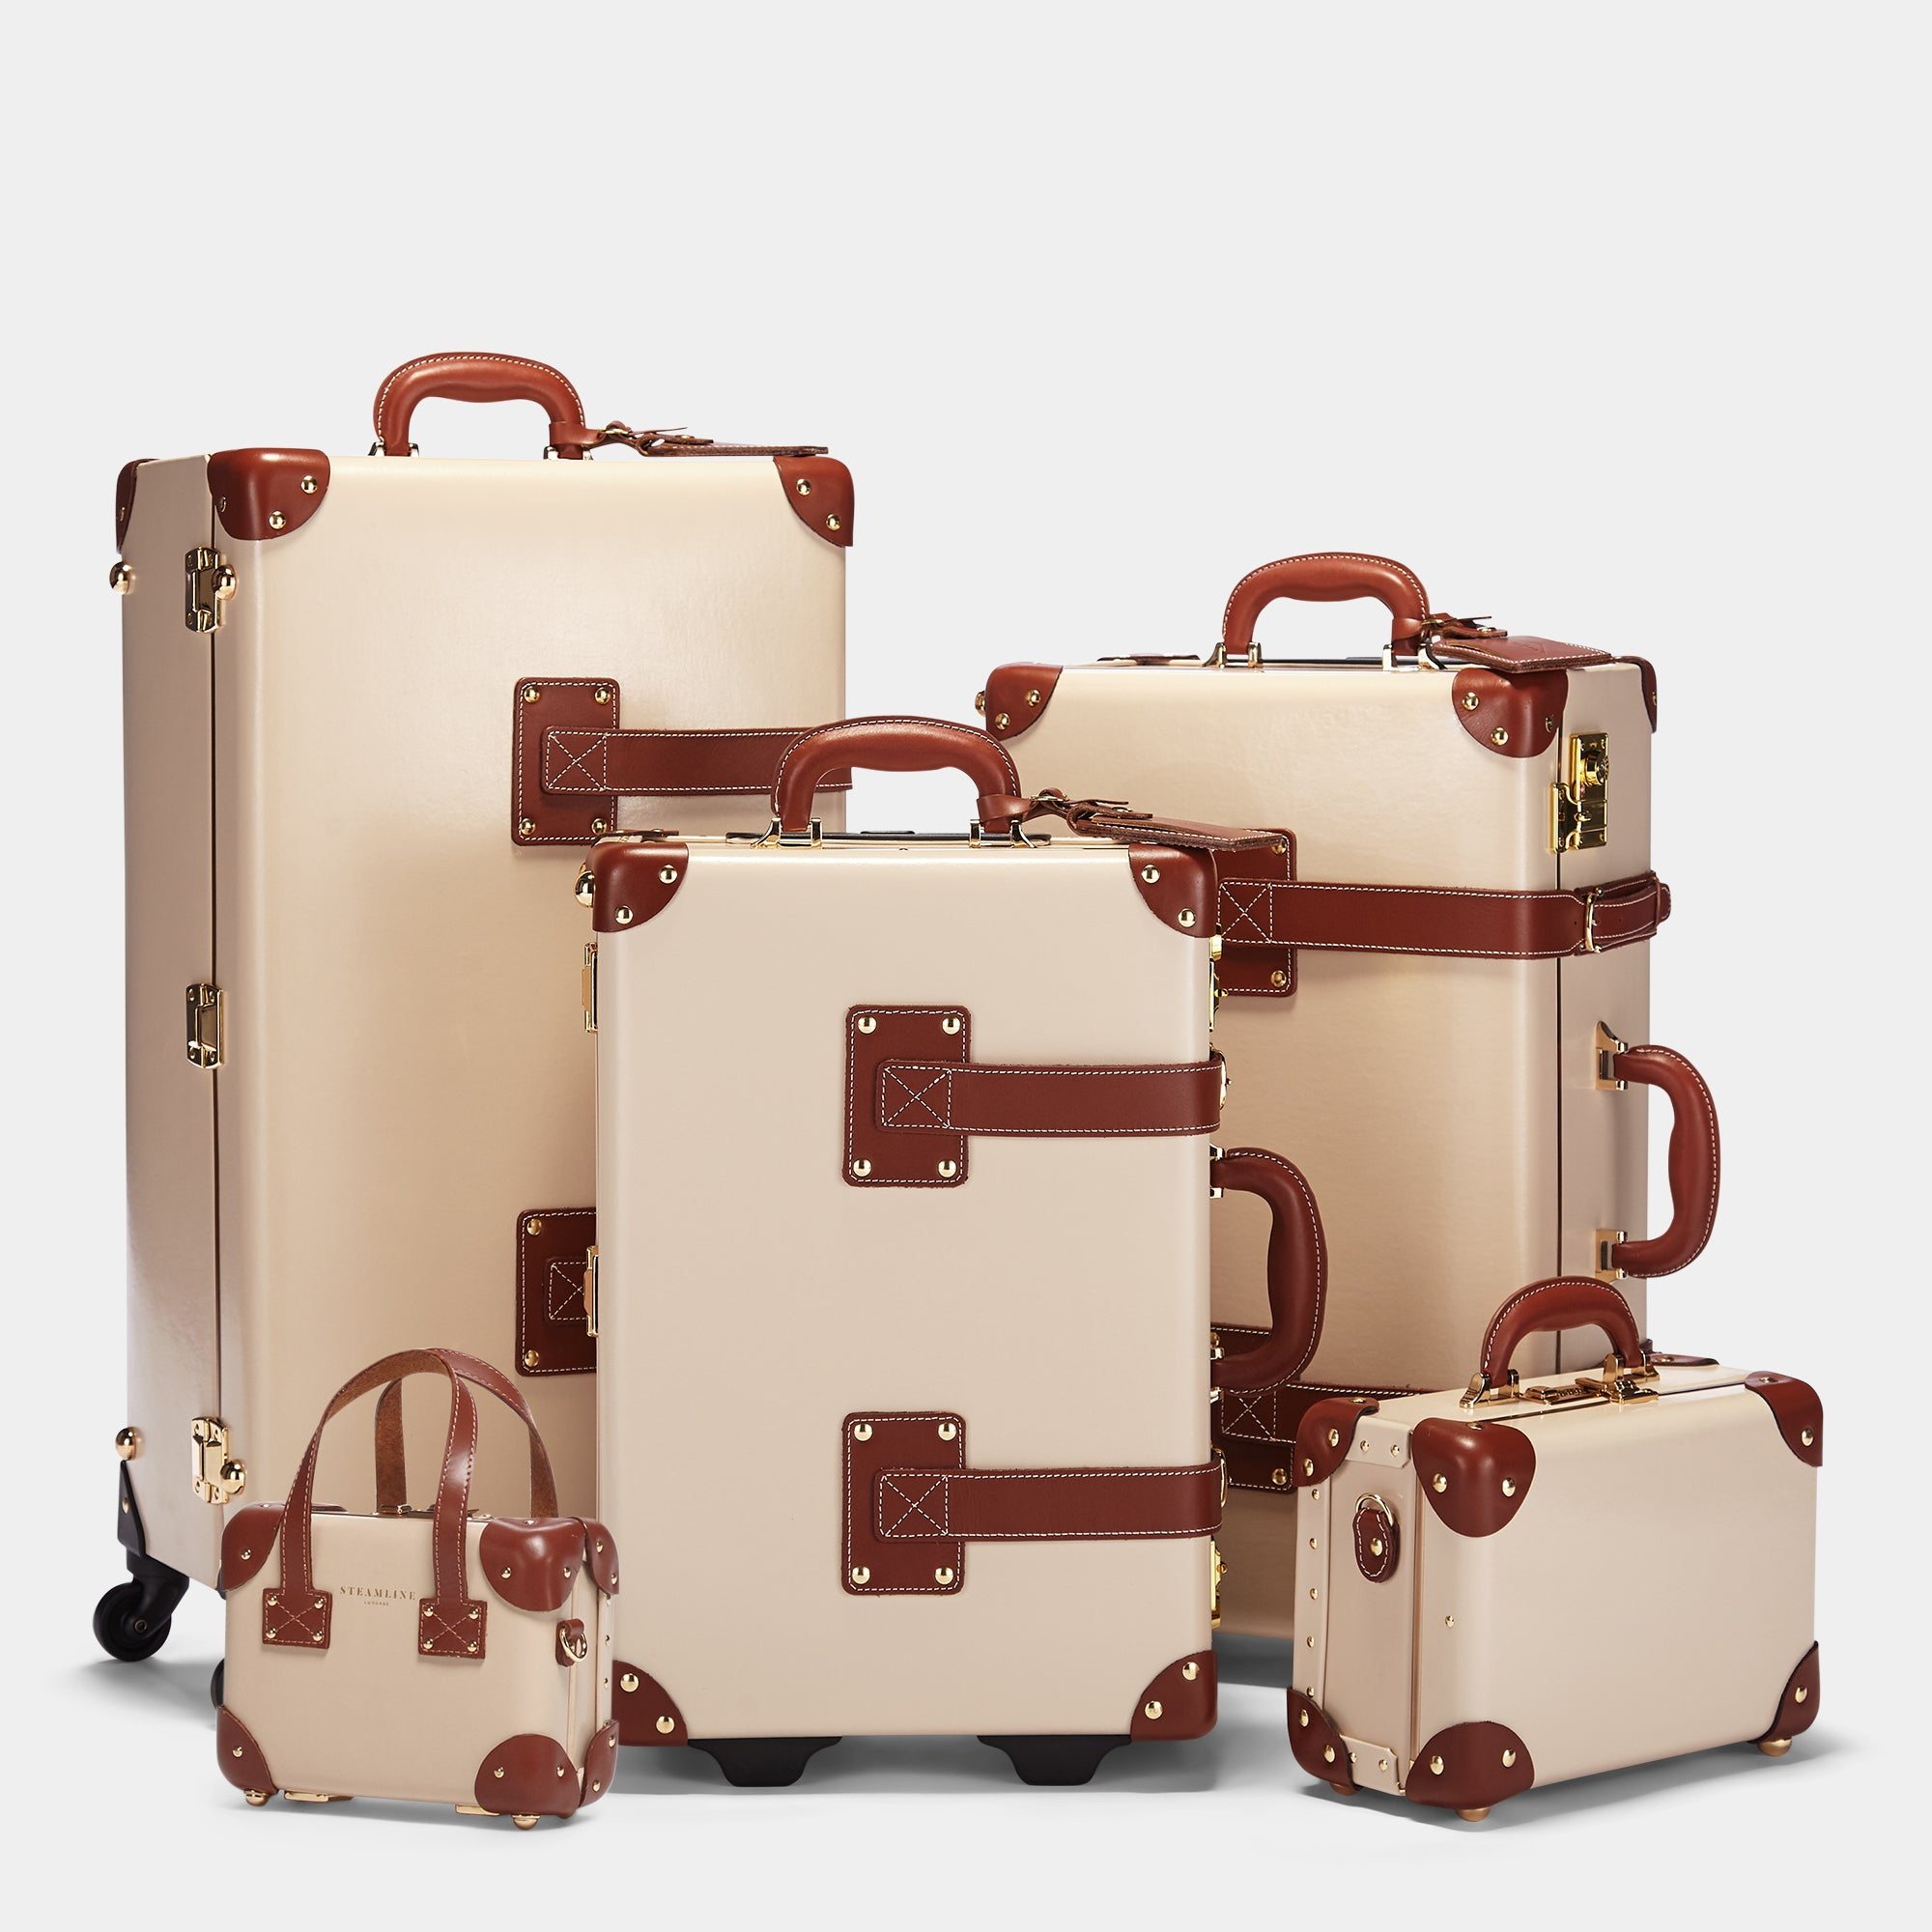 The complete Cream Diplomat Collection: Spinner, Carryon, Stowaway, Vanity and Mini.